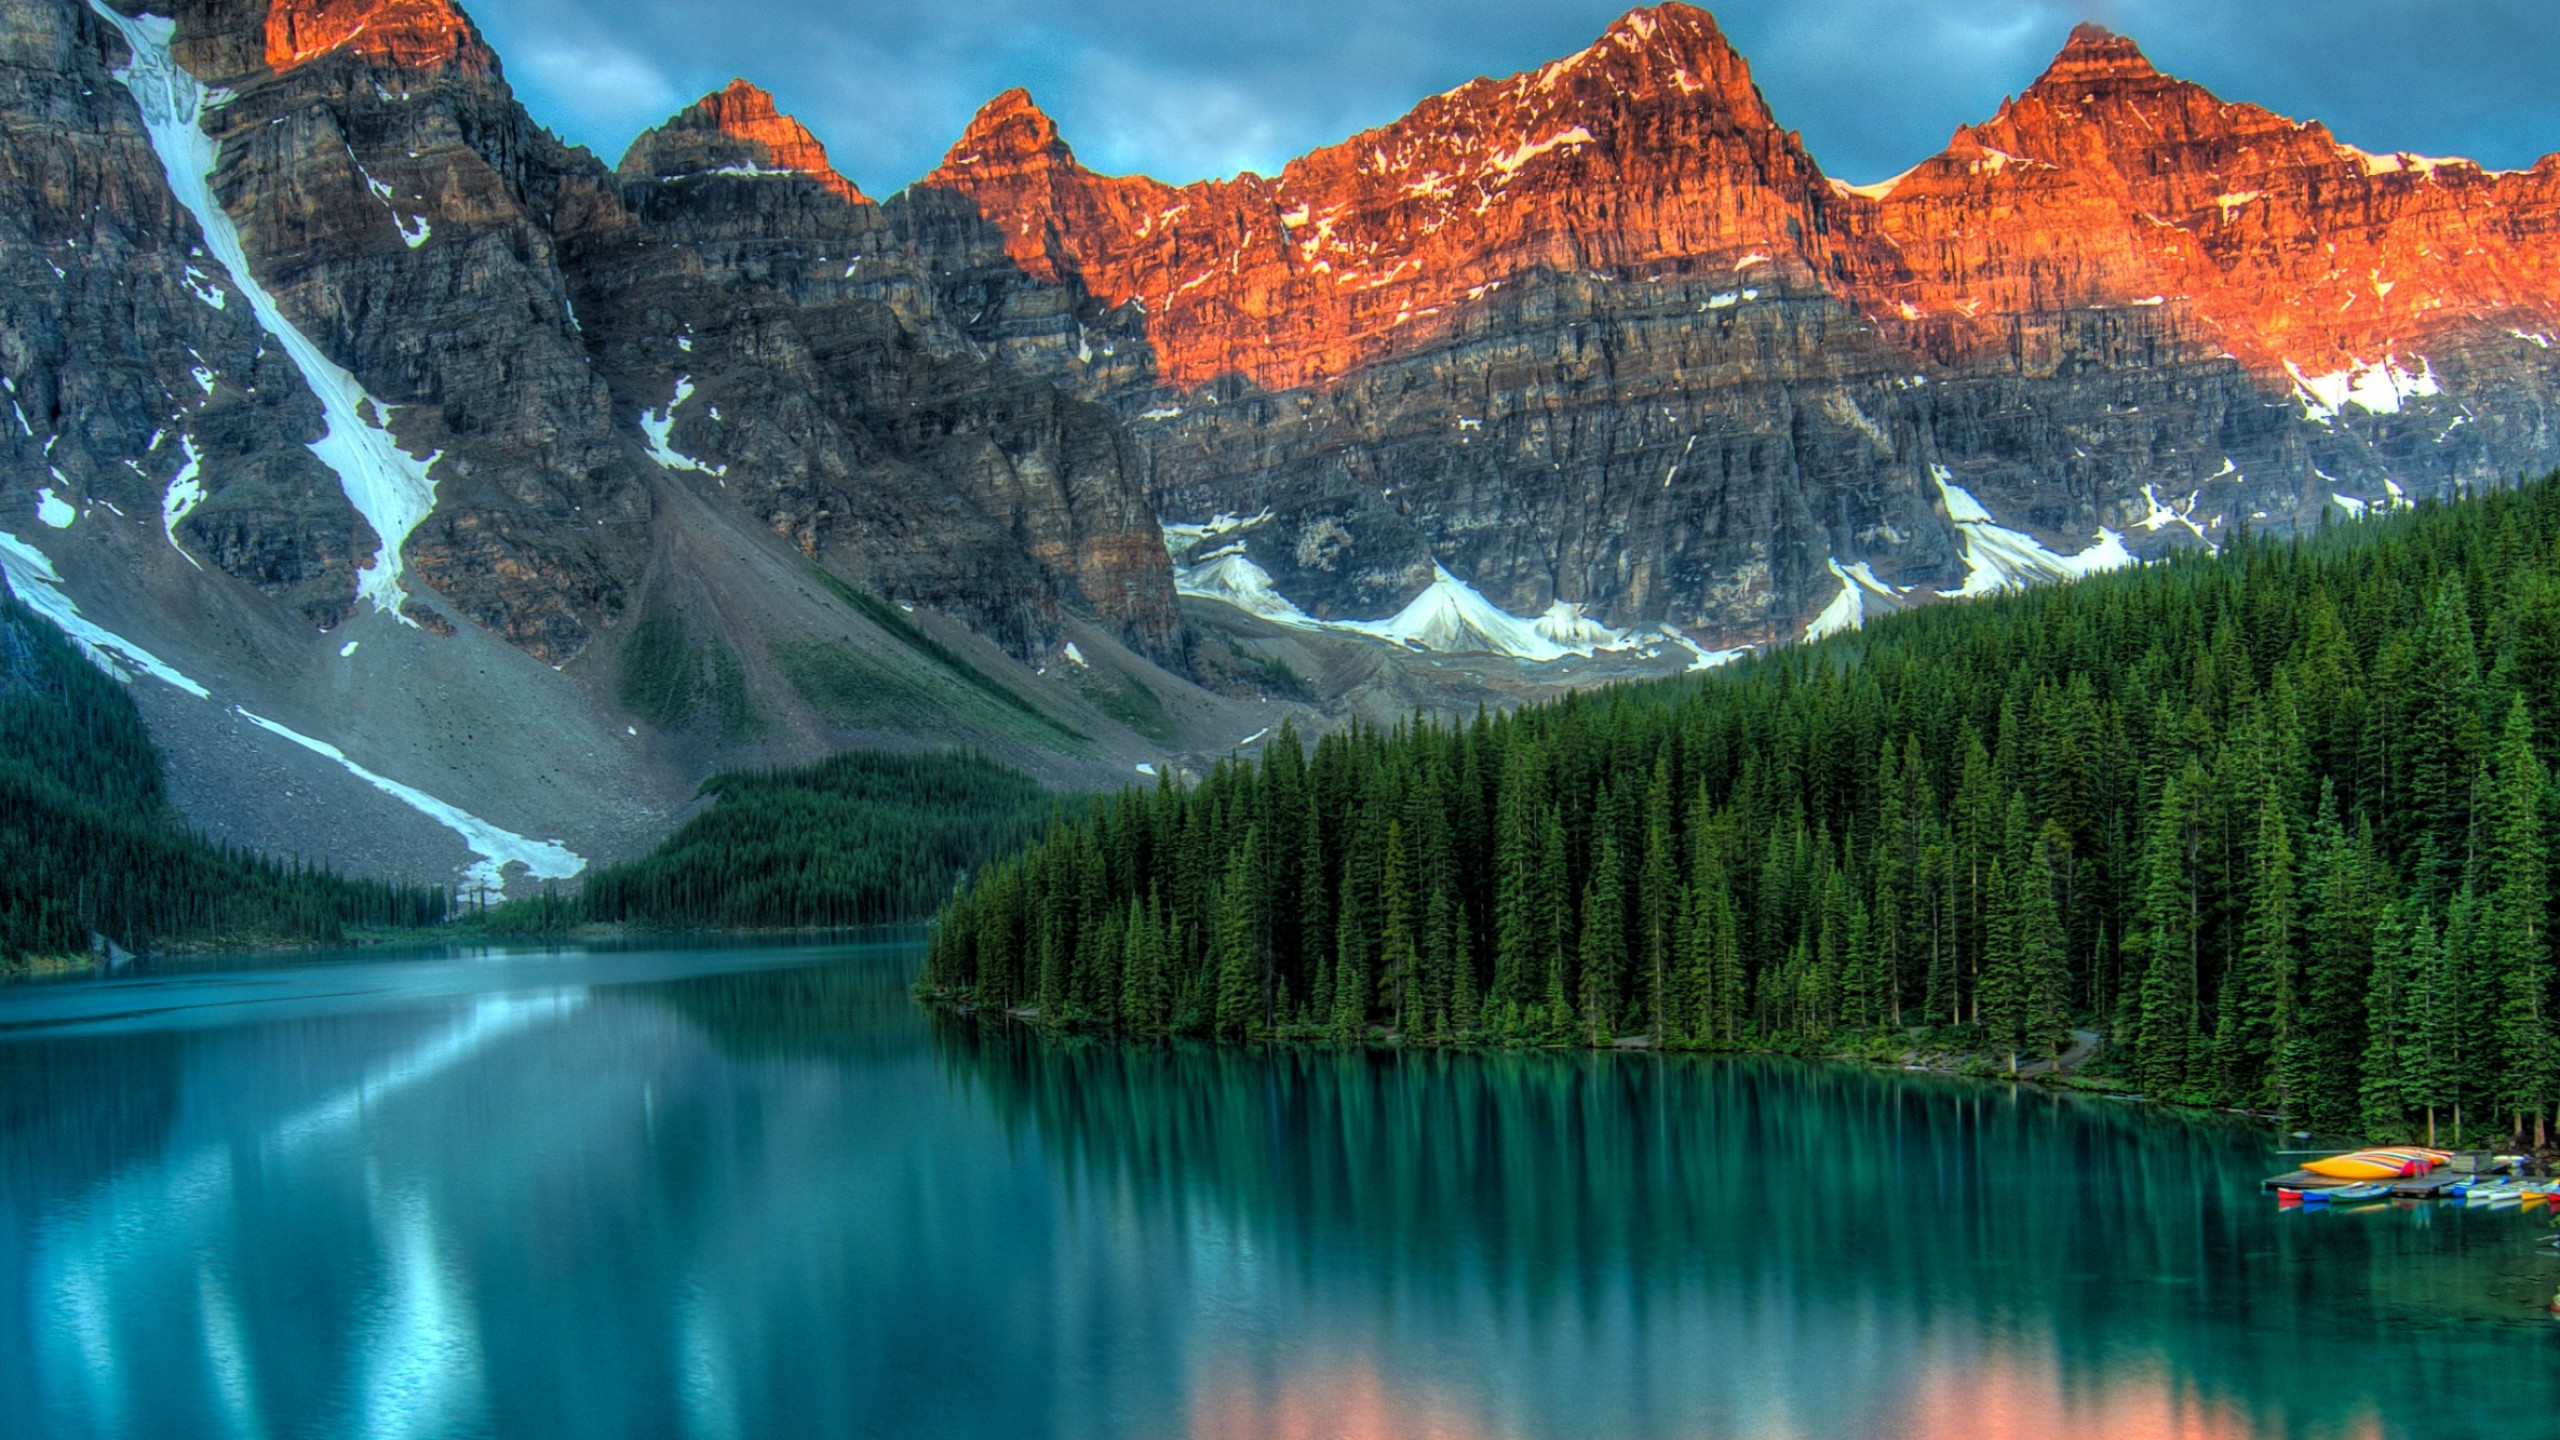 Wallpapers Cars Disney Hd Wallpaper Moraine Lake Banff Canada Mountains Forest